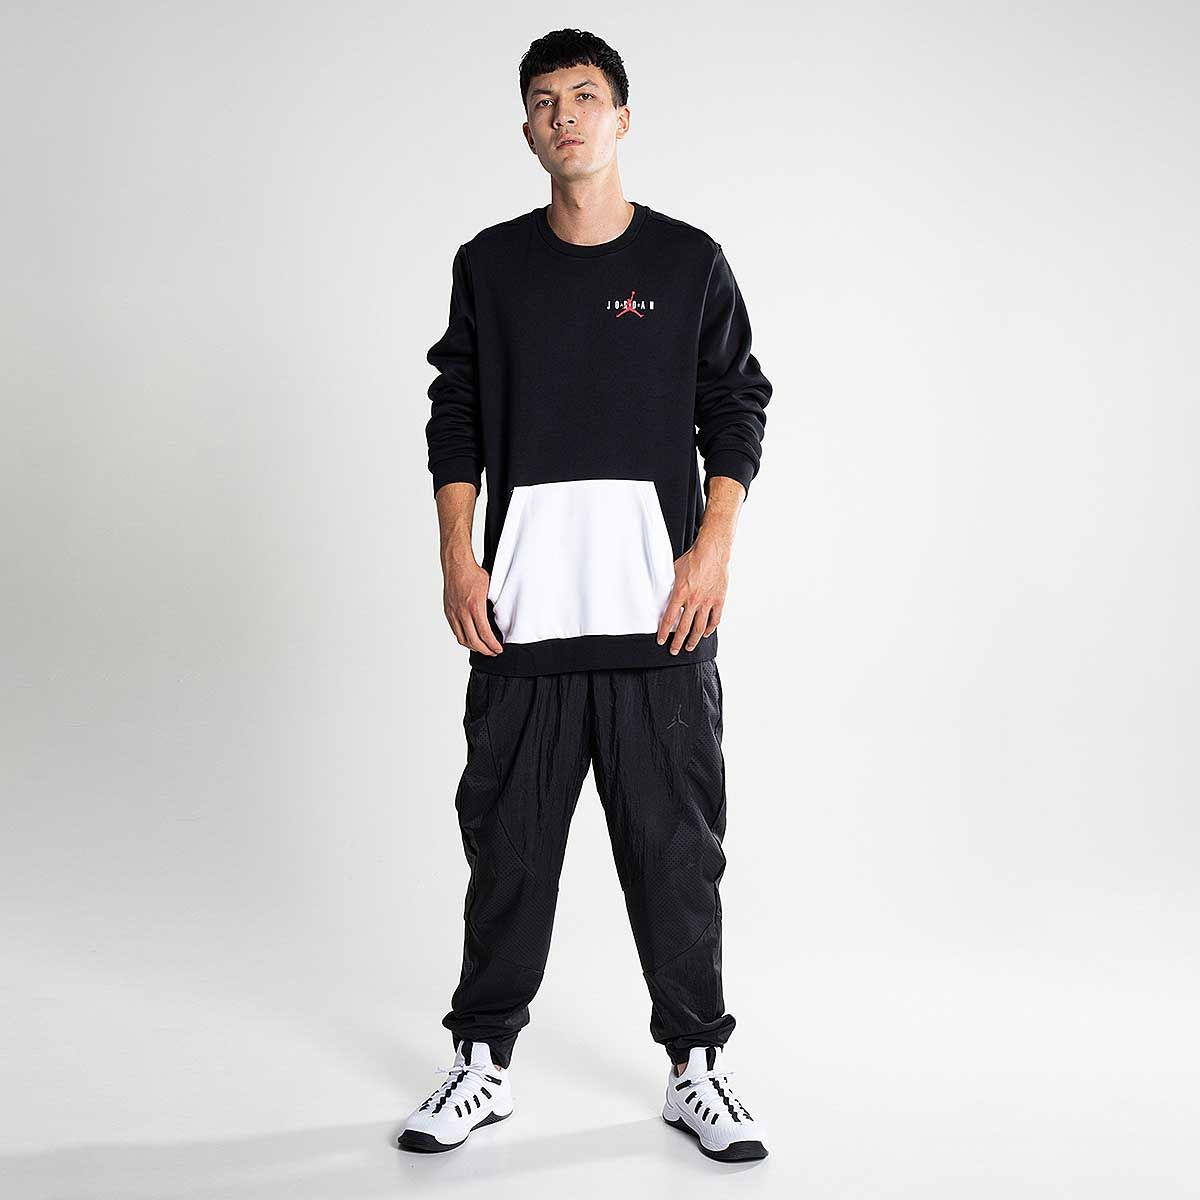 a544f6f3f45 jordan JUMPMAN AIR FLEECE CREW BLACK/WHITE/GYM RED | Jordan swag ...